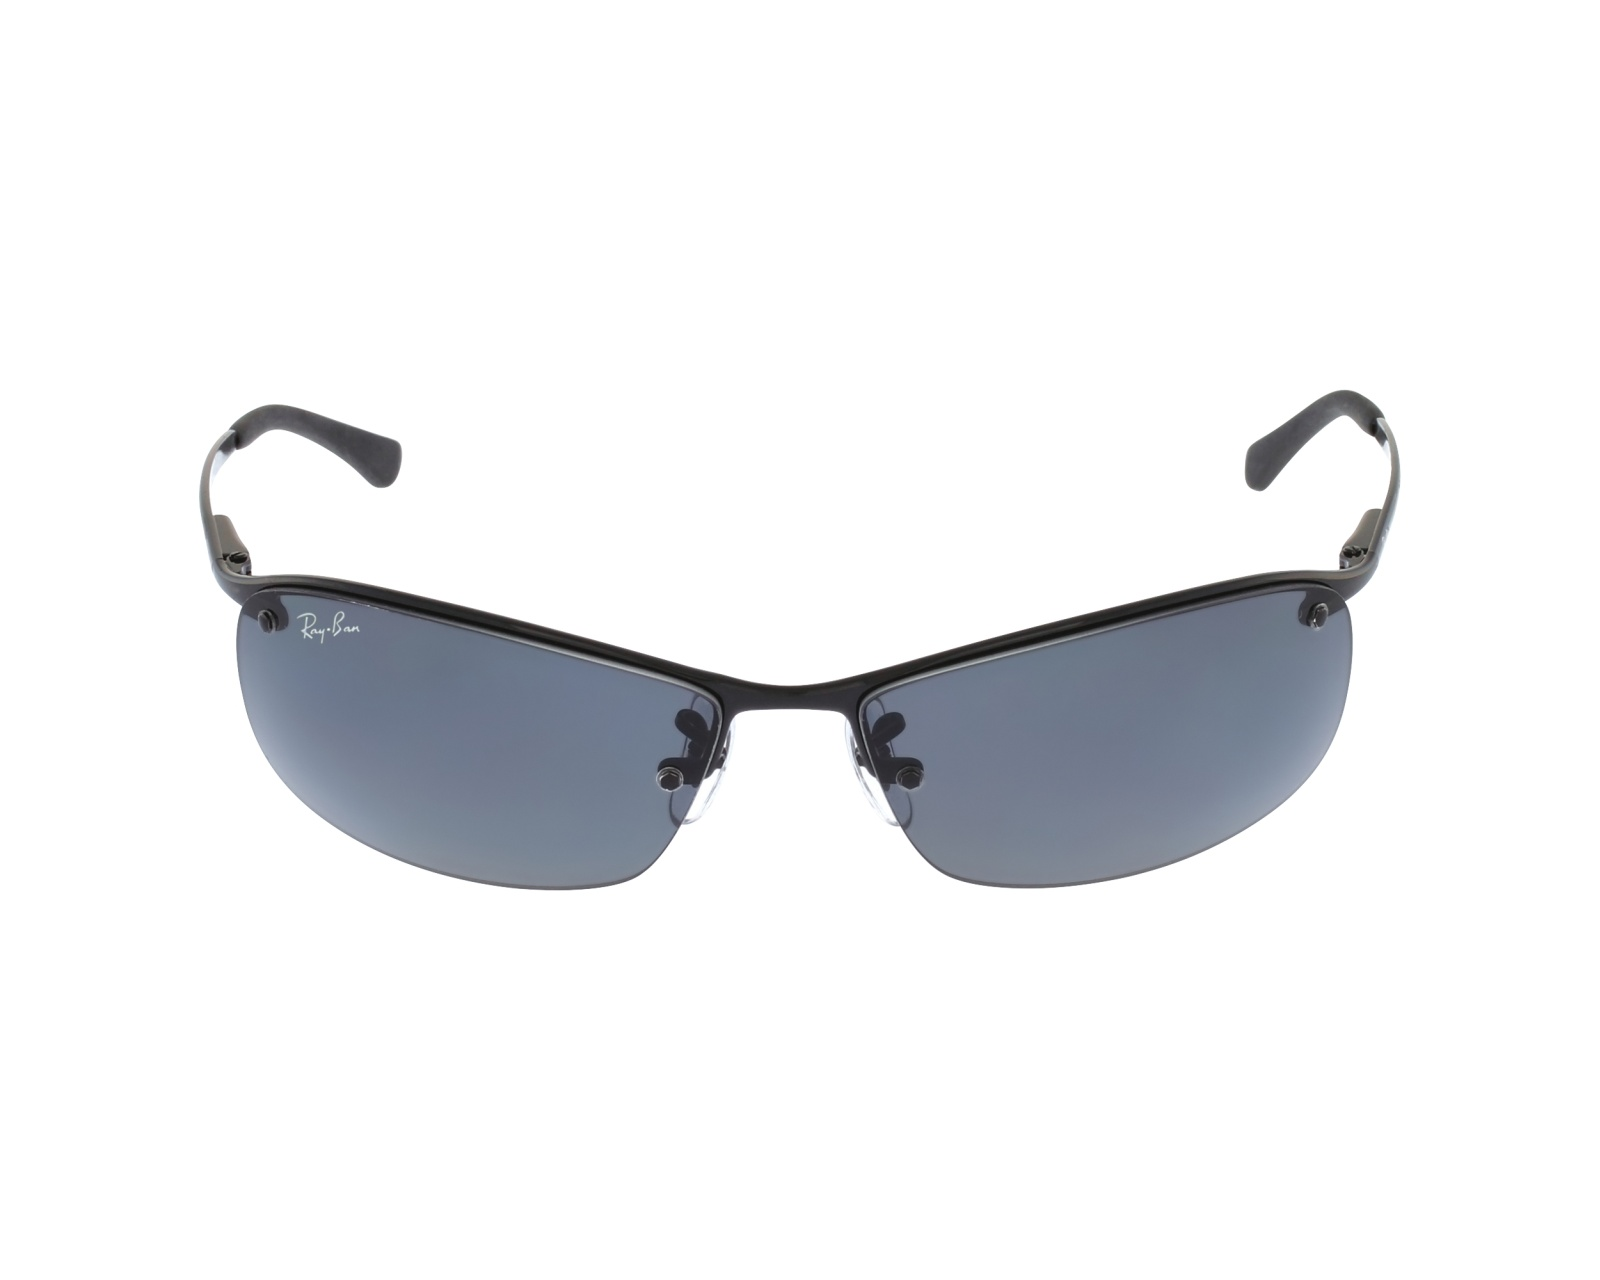 0d4b1fe449 Sunglasses Ray-Ban RB-3183 002 81 63-15 Black profile view